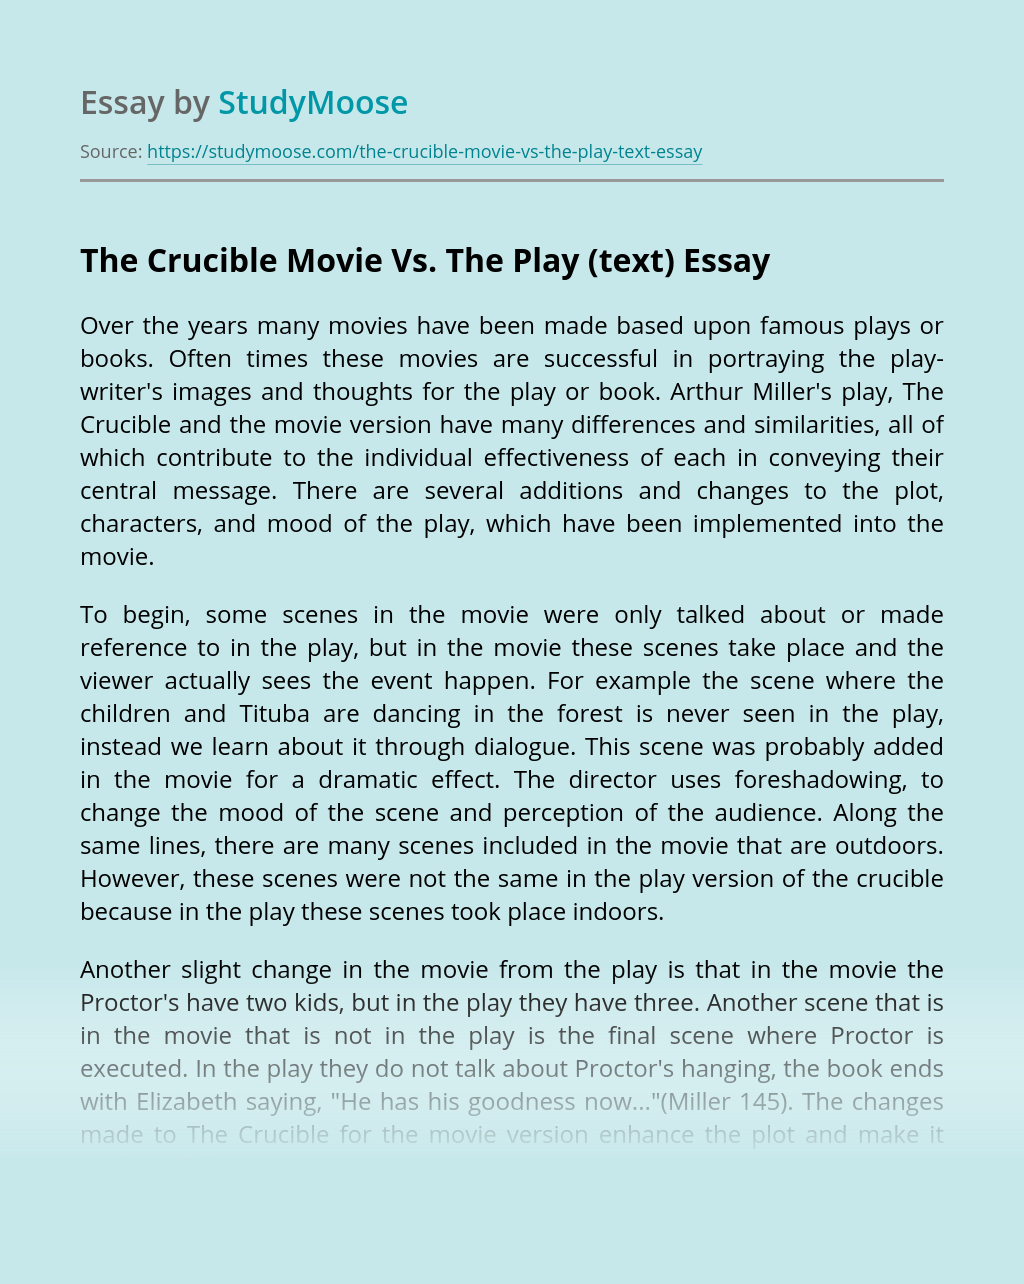 The Crucible Movie Vs. The Play (text)